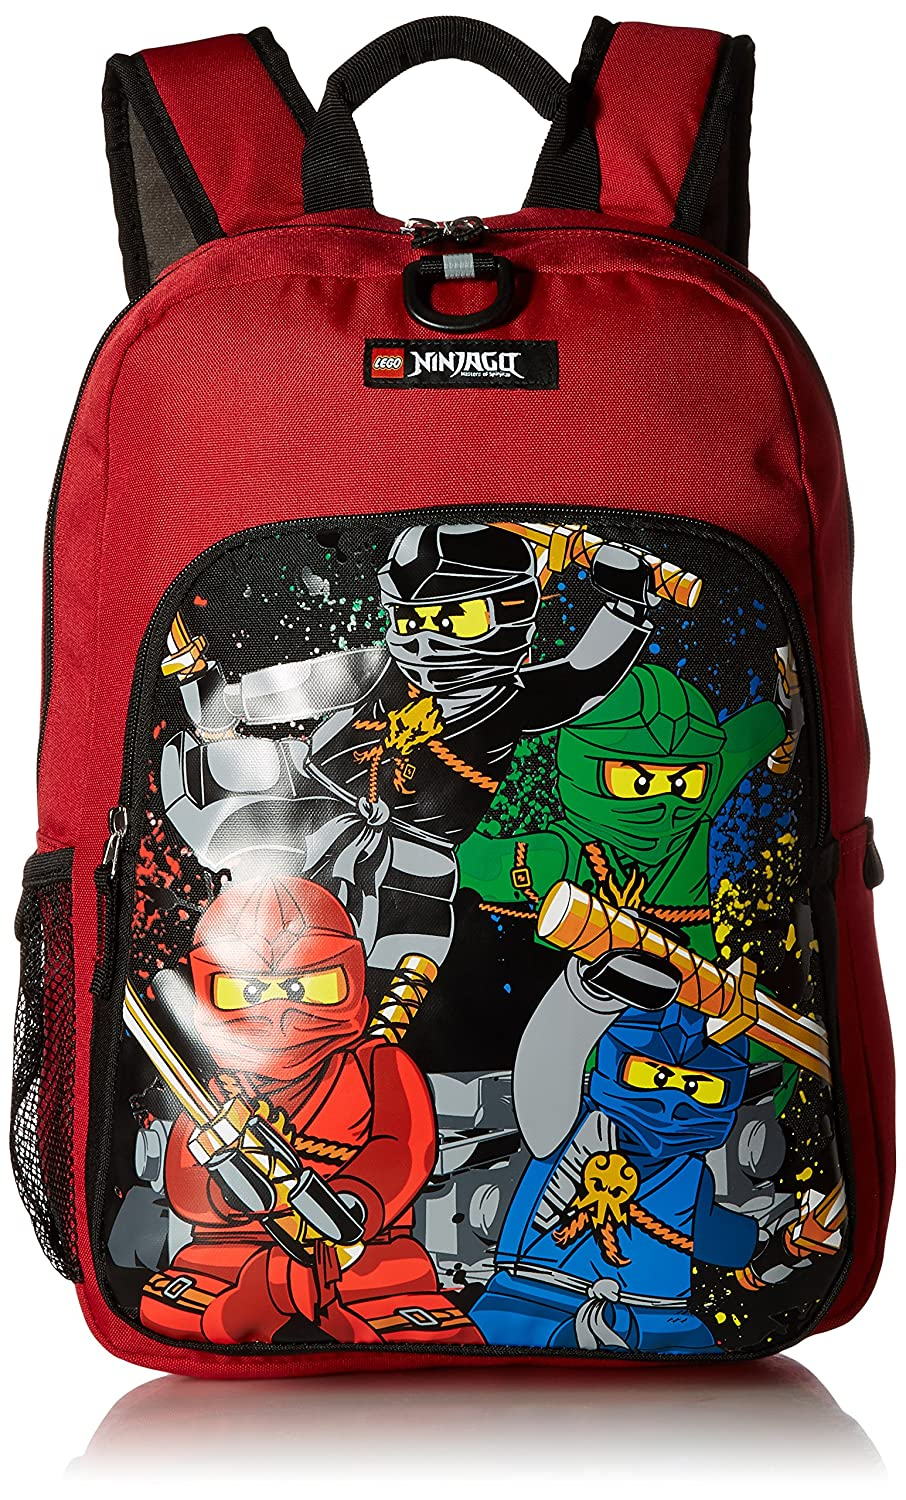 Lego Kids' Ninjago Team Heritage Classic Backpack, Red, One Size Carrygear DP0961-300NT